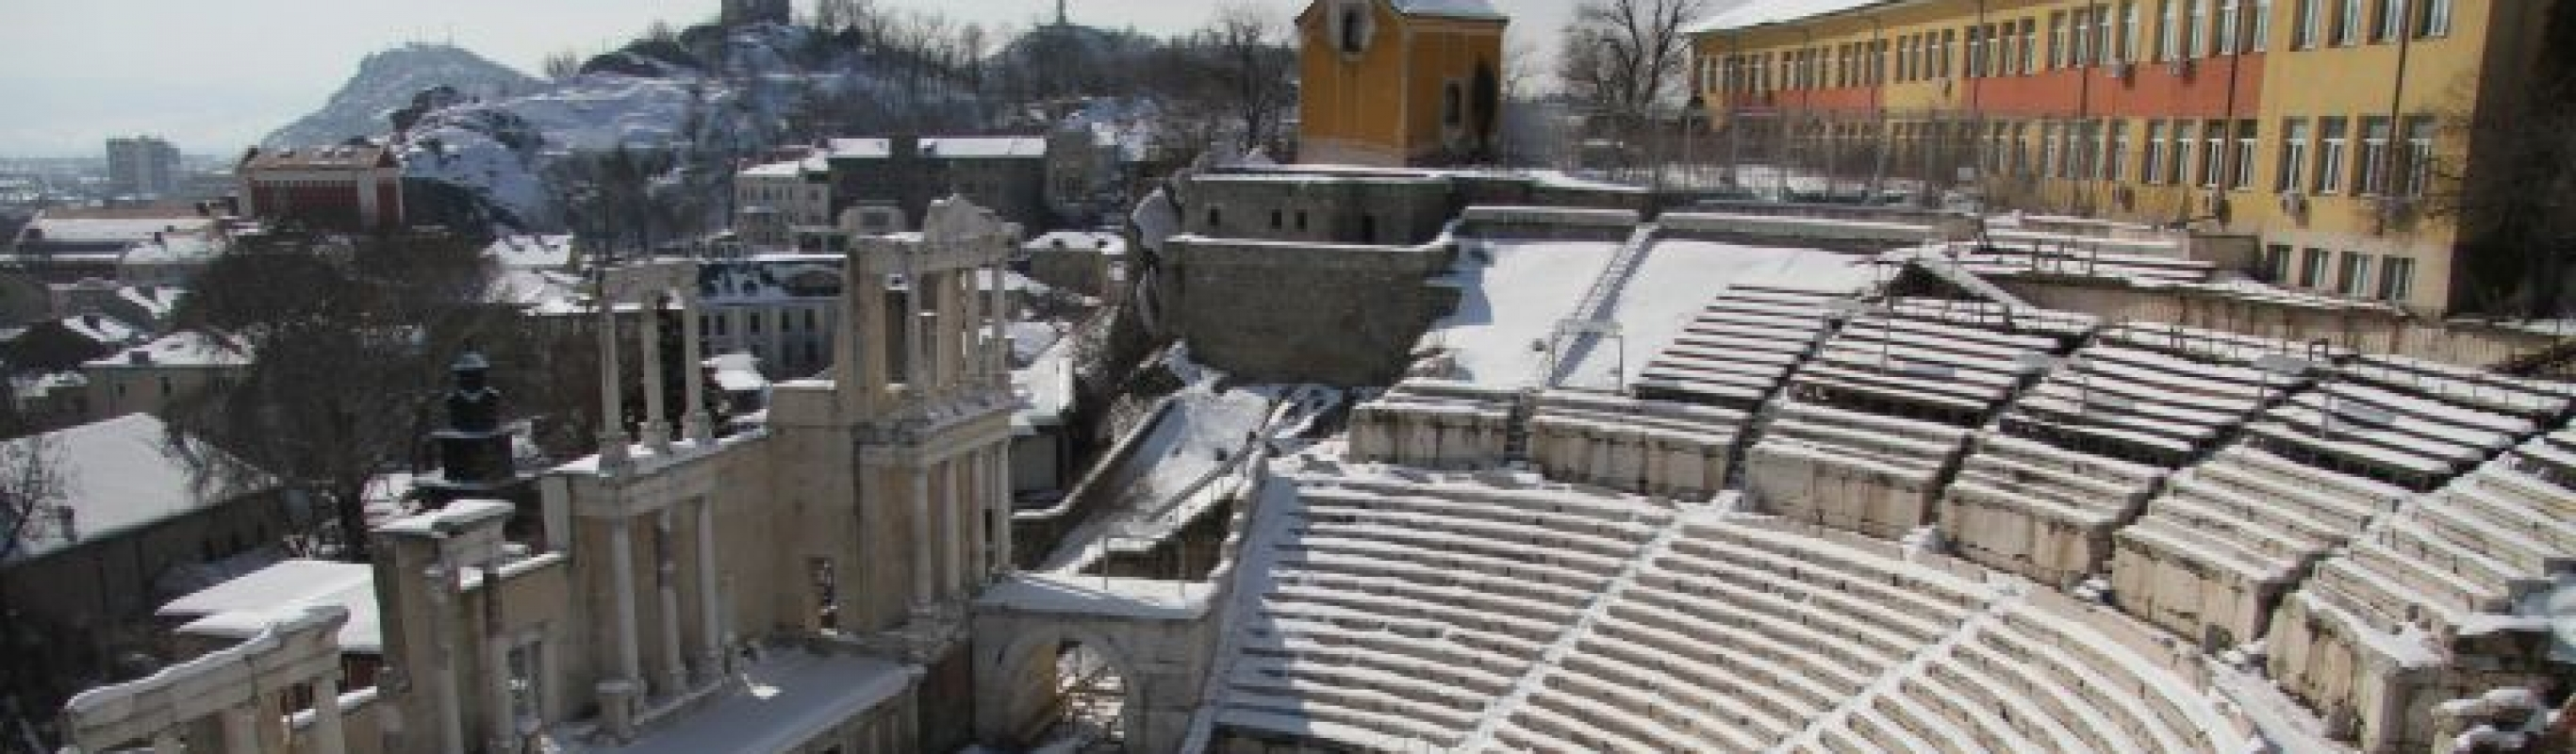 What to do in Plovdiv during the weekend (02-04.03)